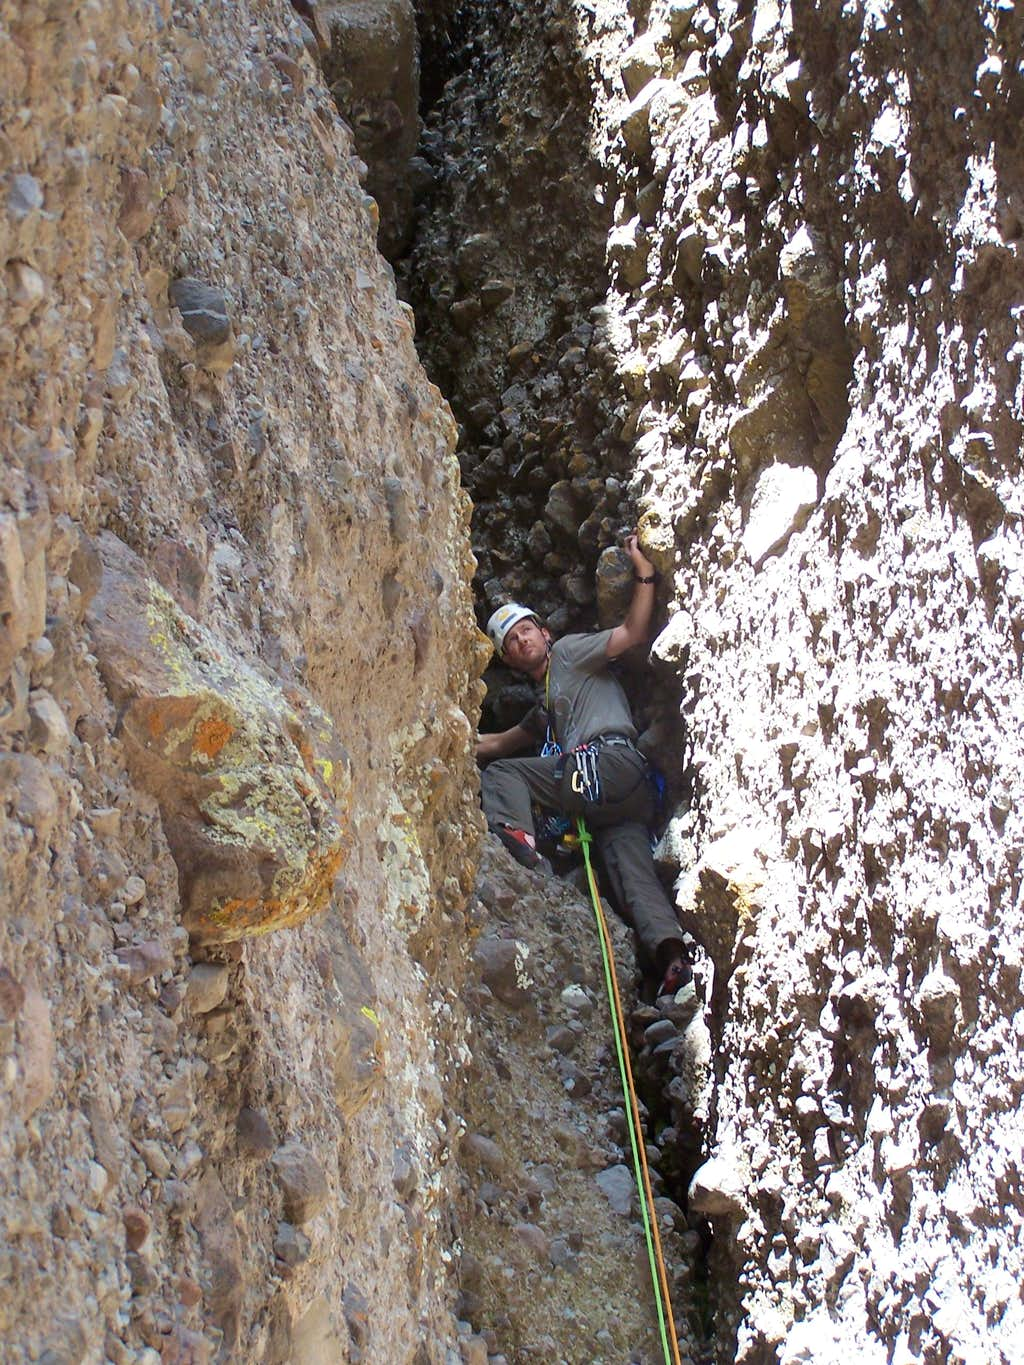 Starting the Second Pitch